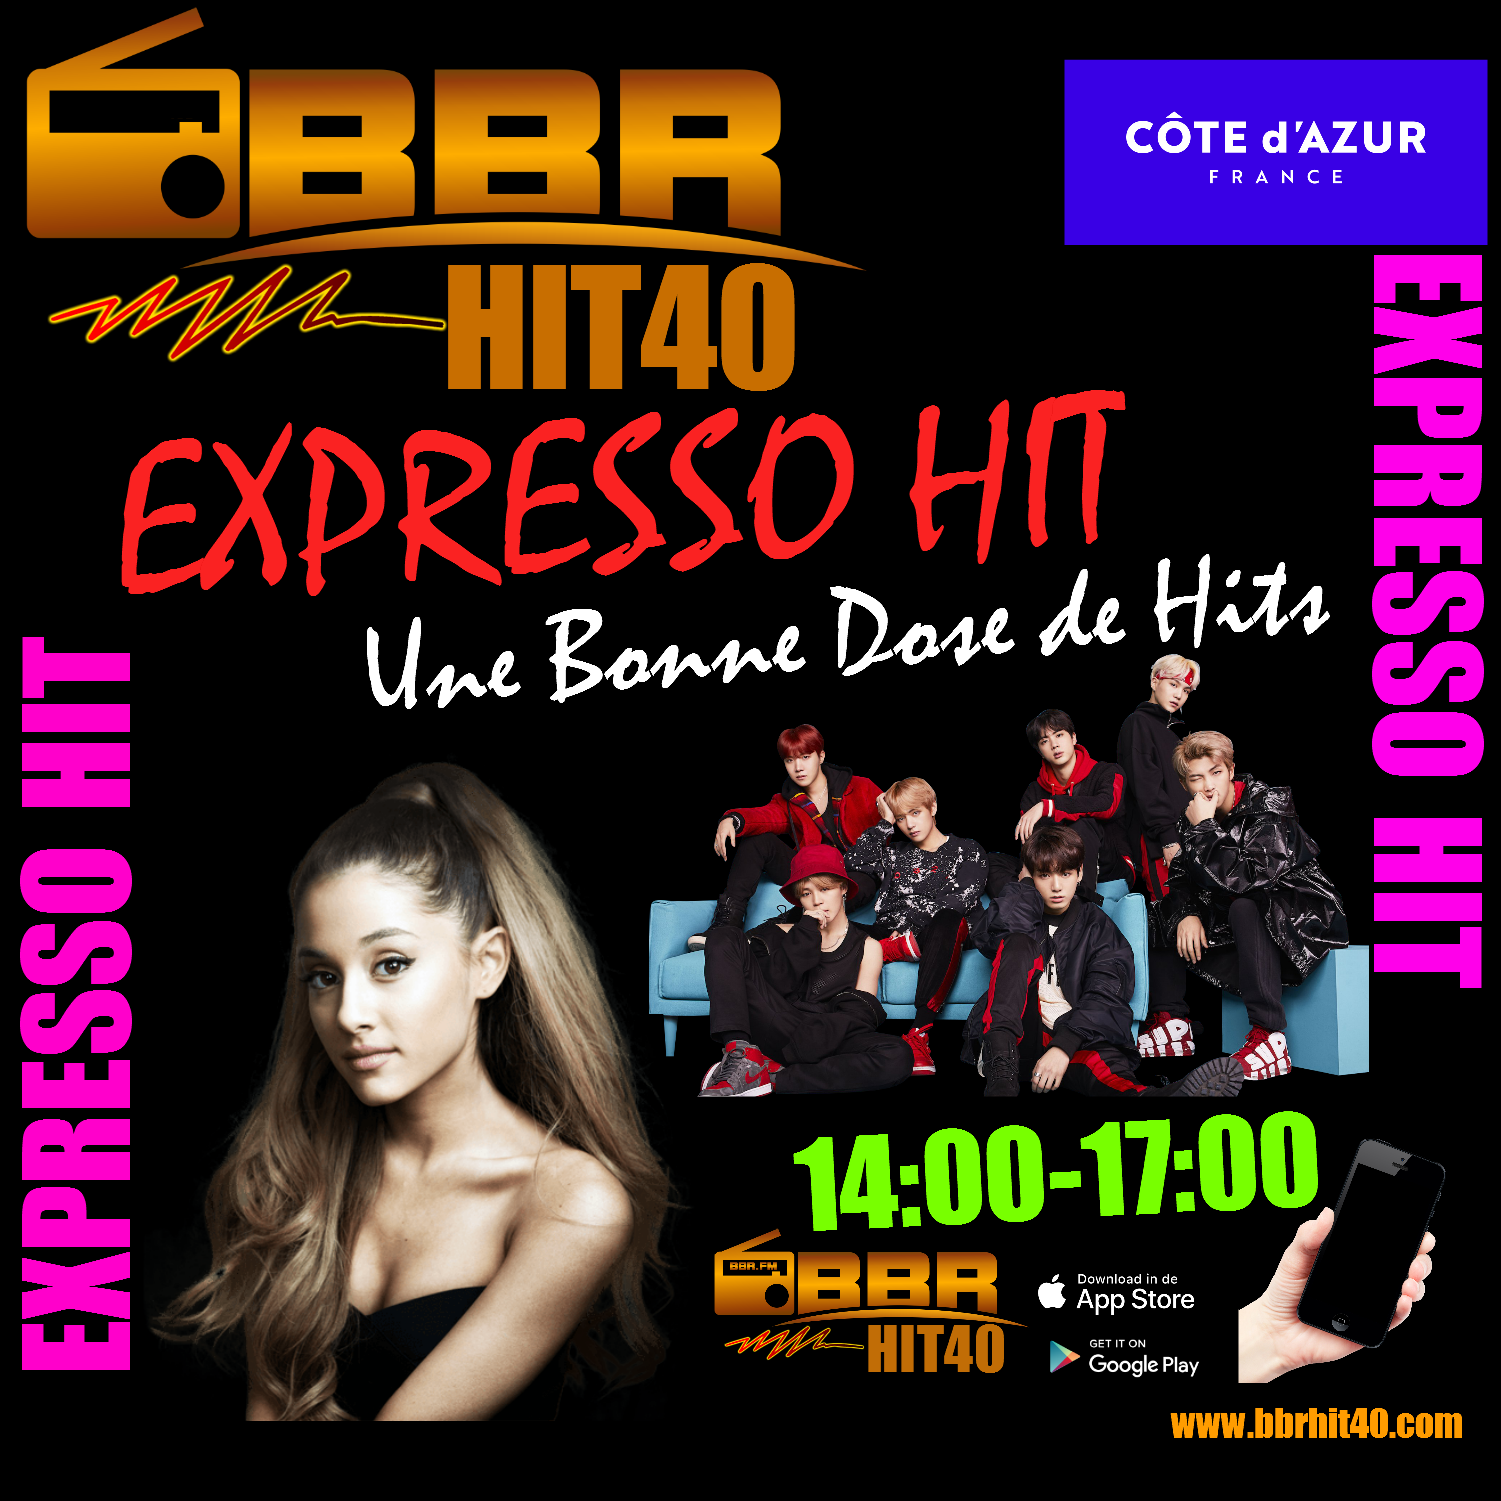 Expresso Hit